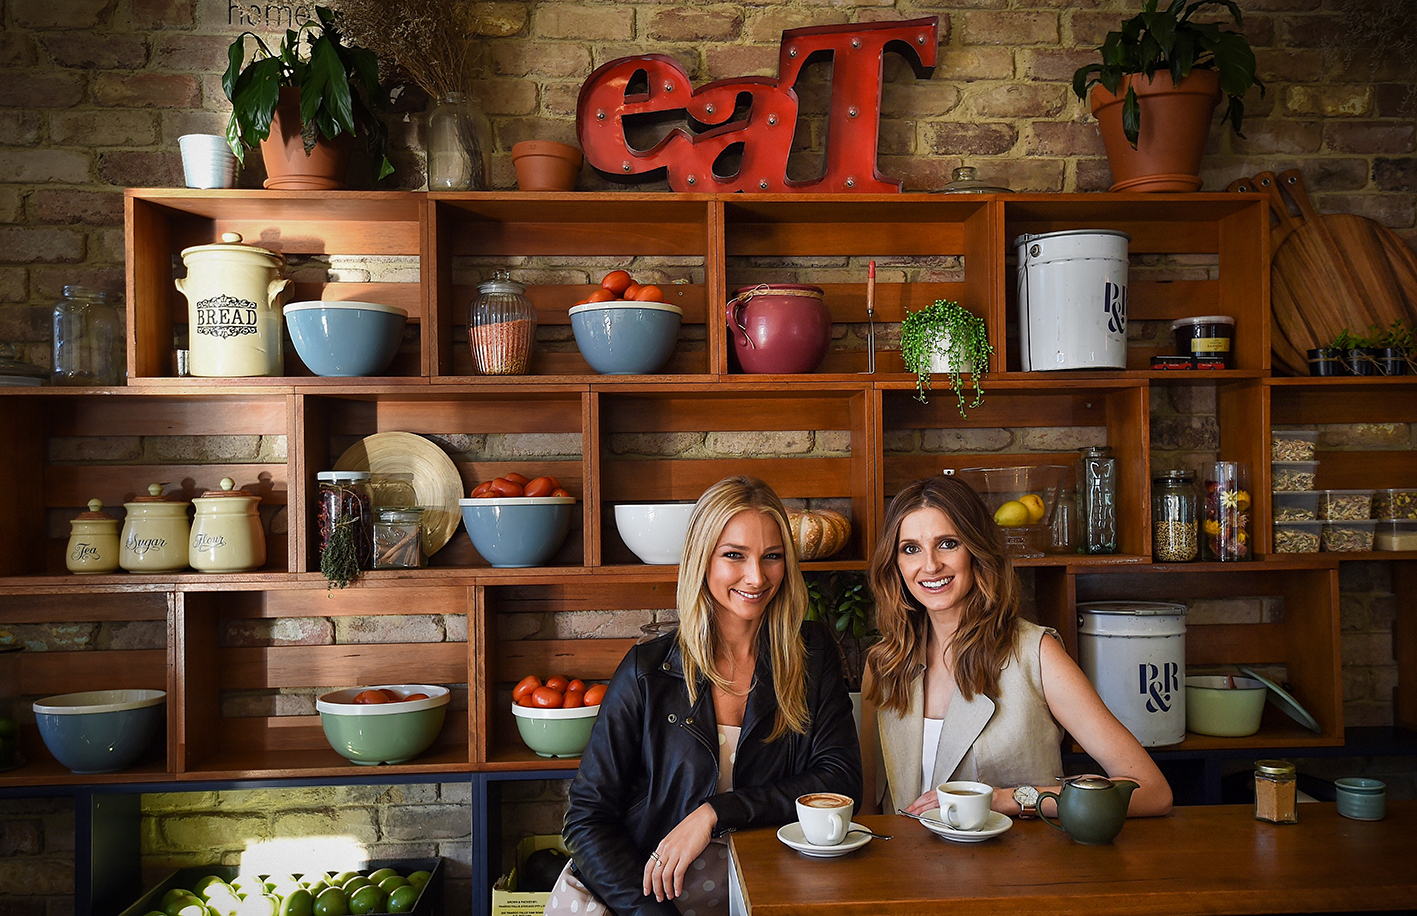 Anna Heinrich (left) with Kate Waterhouse (right) at Wild Basket in Neutral Bay, Sydney. 28th June, 2016. Photo: Kate Geraghty